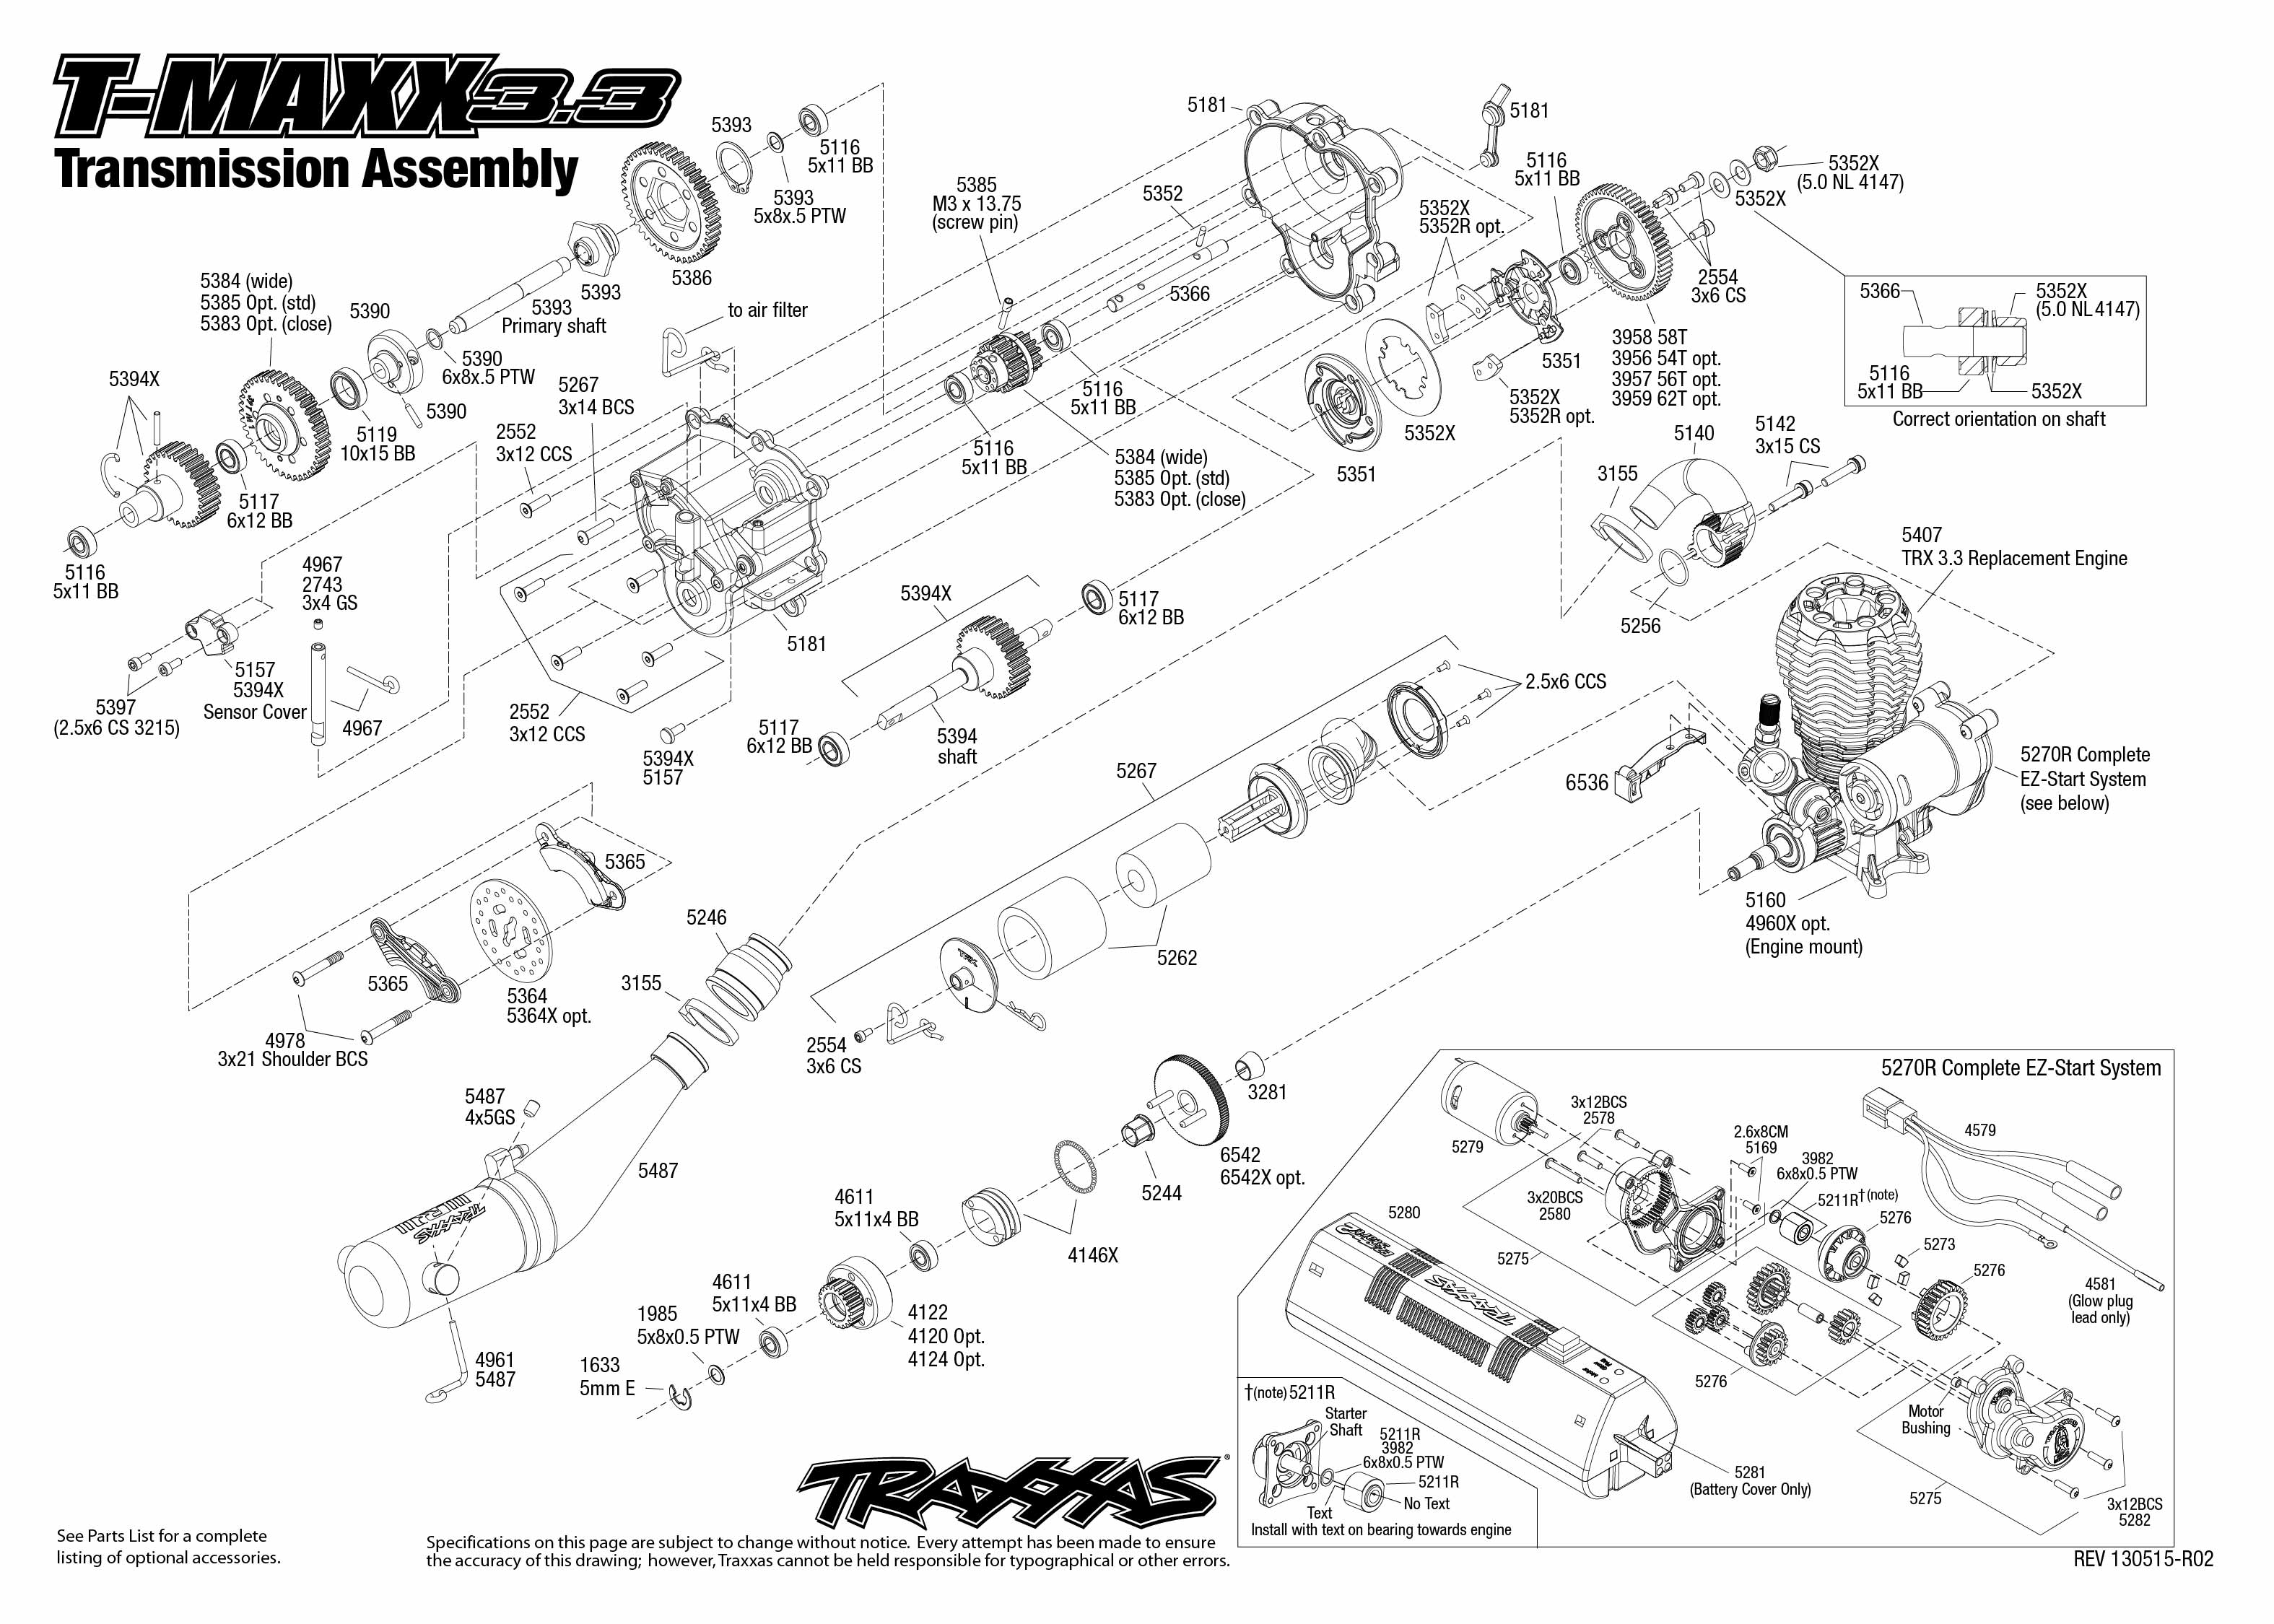 [SCHEMATICS_48IS]  T-Maxx 3.3 (4907) Transmission Assembly | Exploded View | Traxxas | Traxxas 2 5 Engine Diagram |  | Traxxas